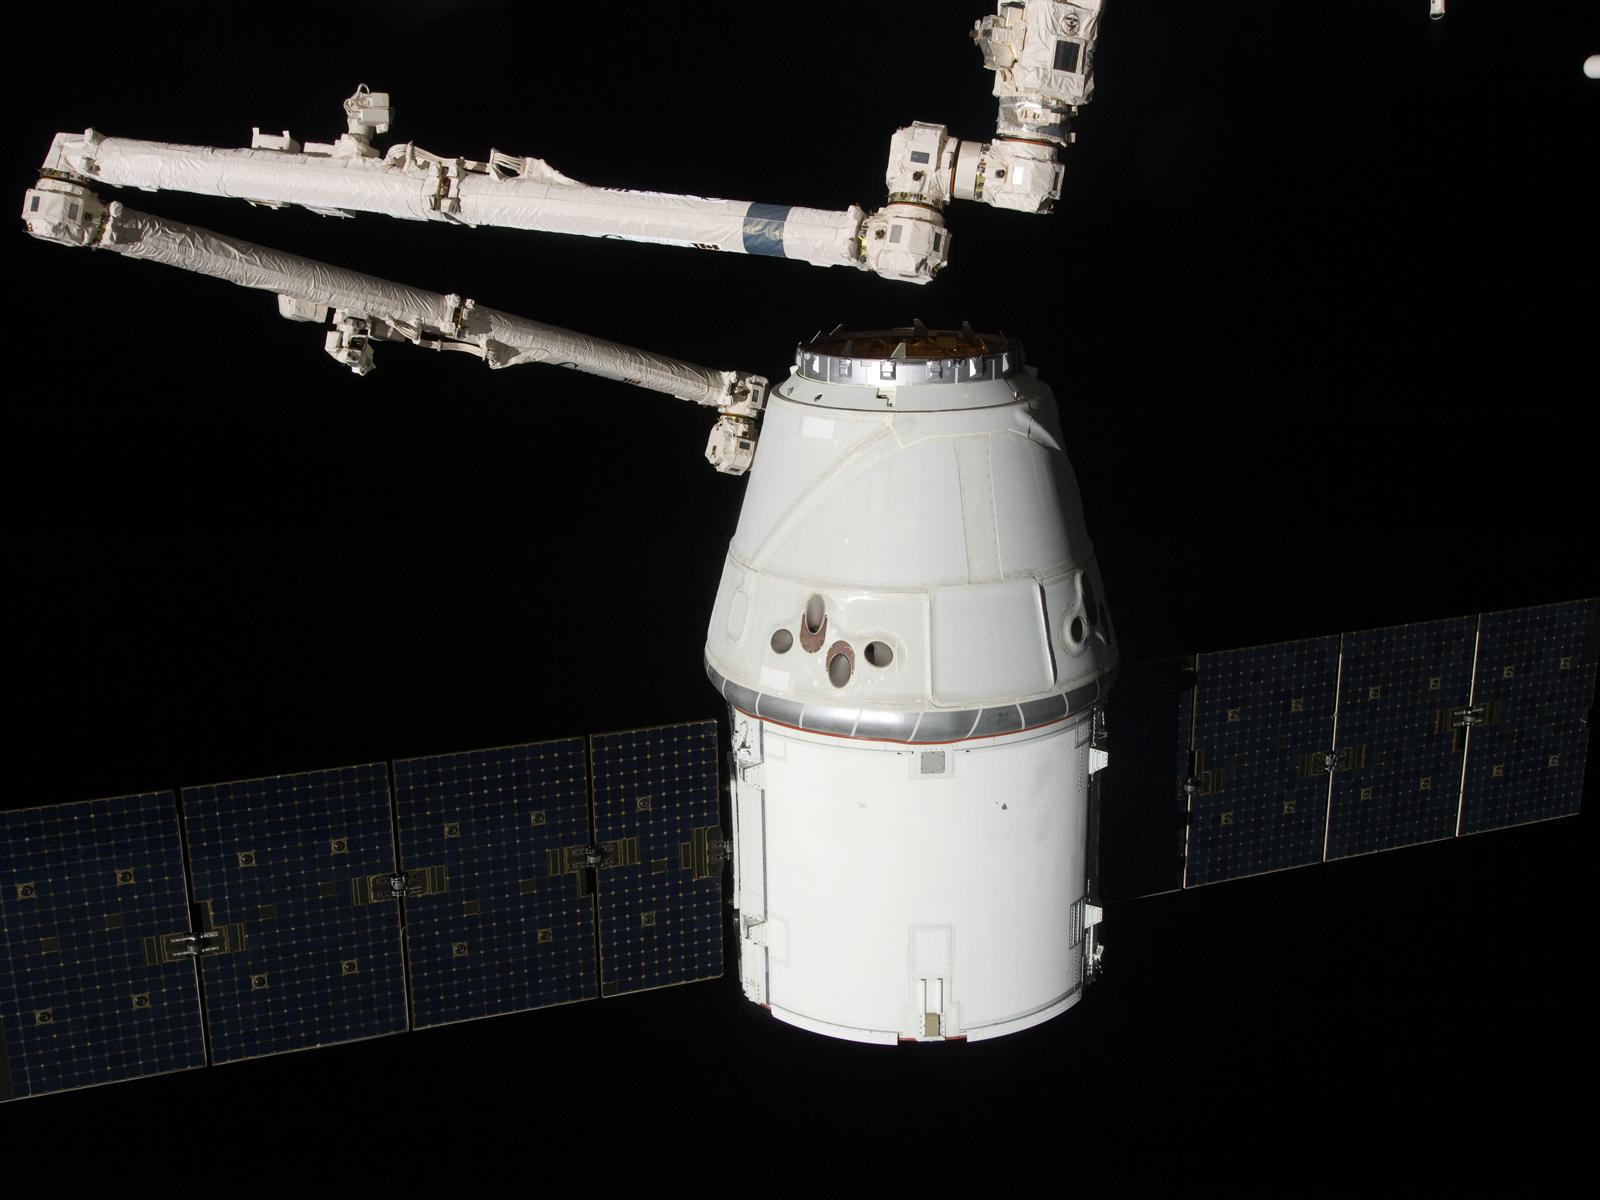 International Space Station - SpaceX Dragon - Unexplained ...